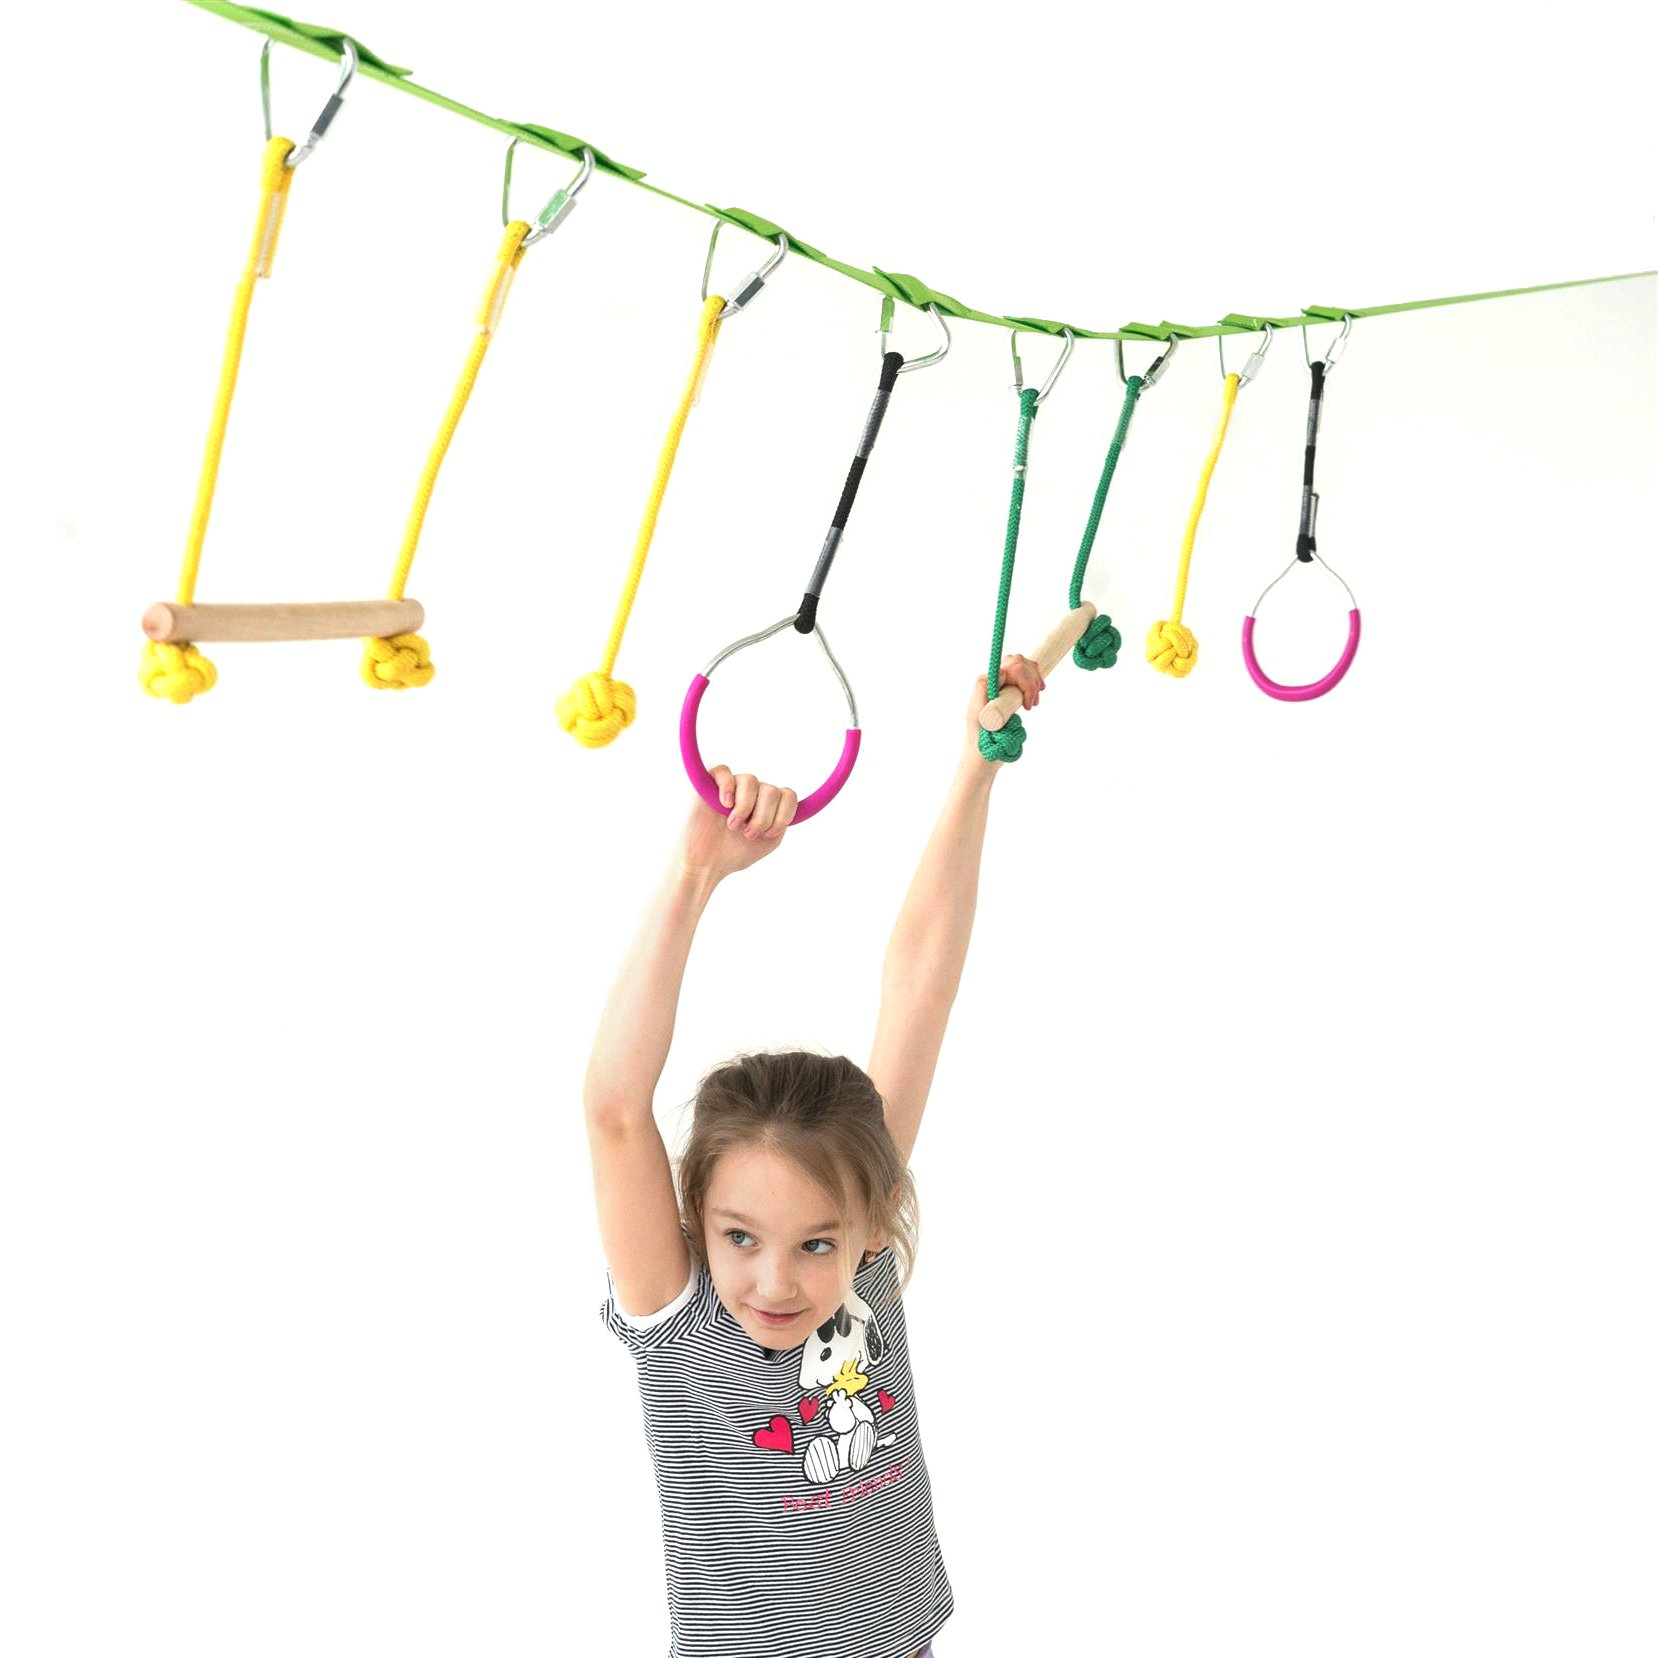 Powerfly Ninja Hanging Obstacle Course Kit for Kids - 36' Slackline, 2 Monkey Bars, 2 Gymnastics Rings, 3 Fists - Obstacles Adventure Line Equipment Set for Backyard or Playground Activities by Powerfly (Image #1)